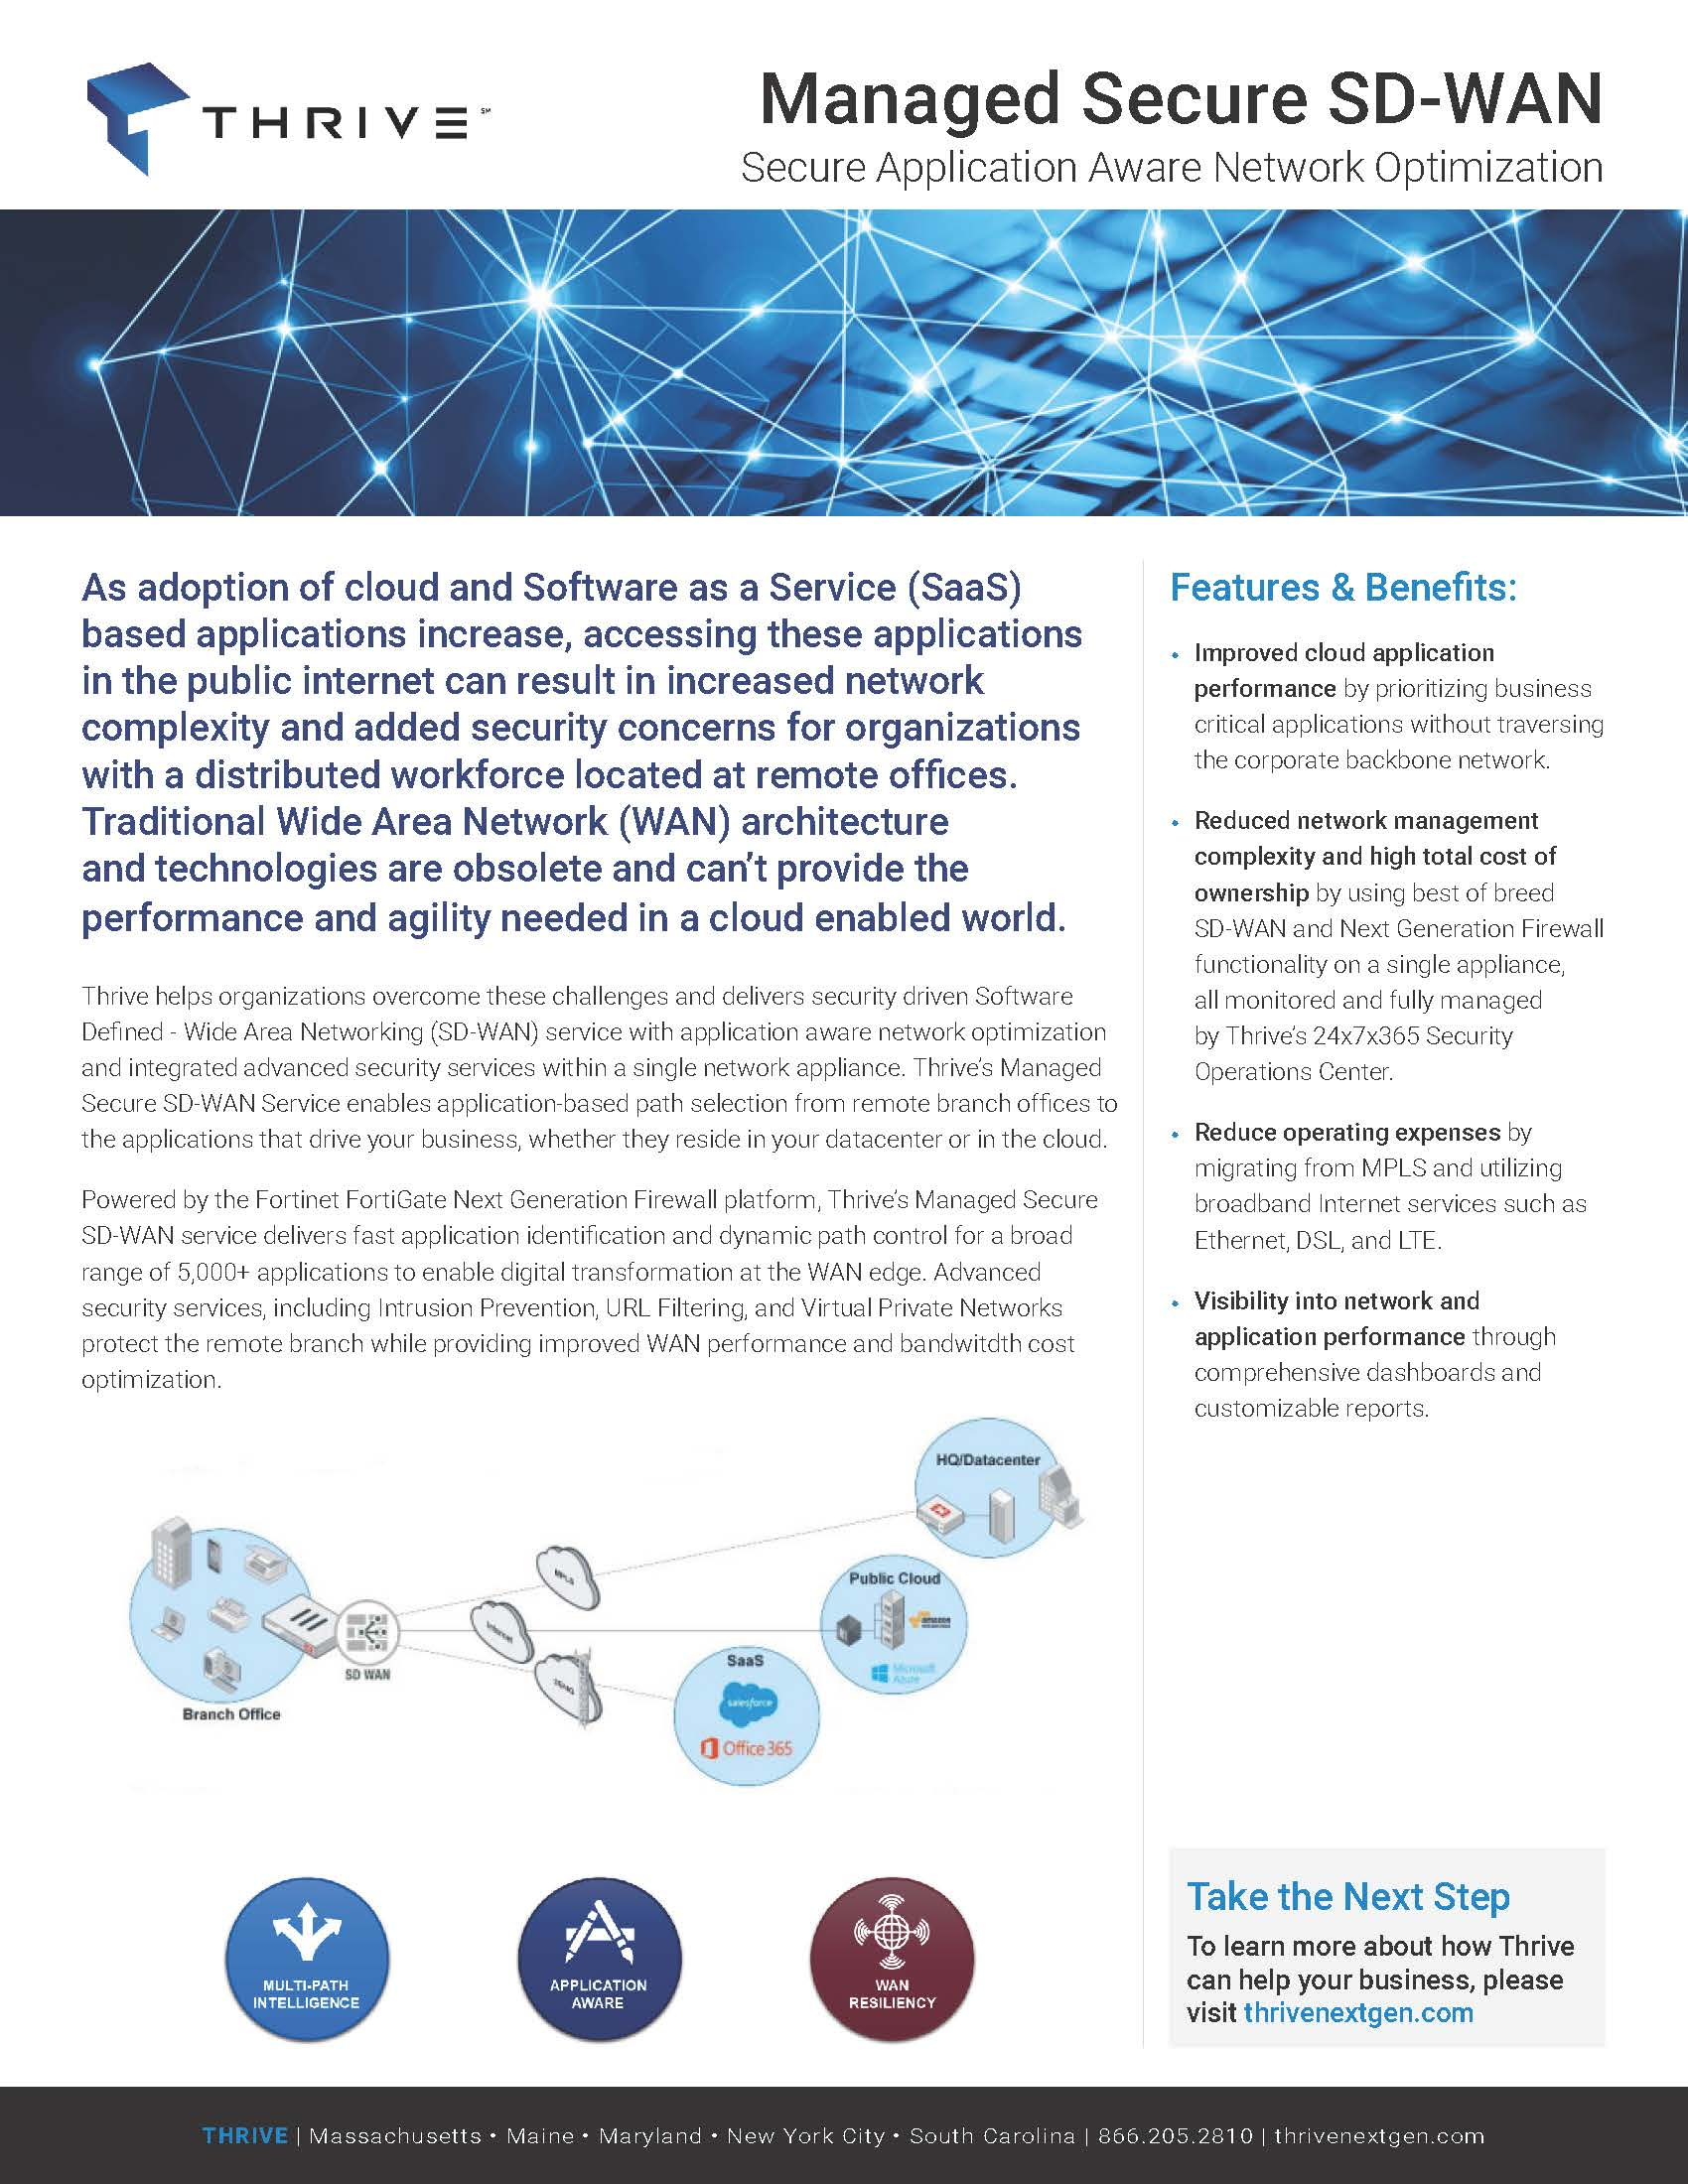 Thrive_Managed Secure SD-WAN One Pager-FINAL